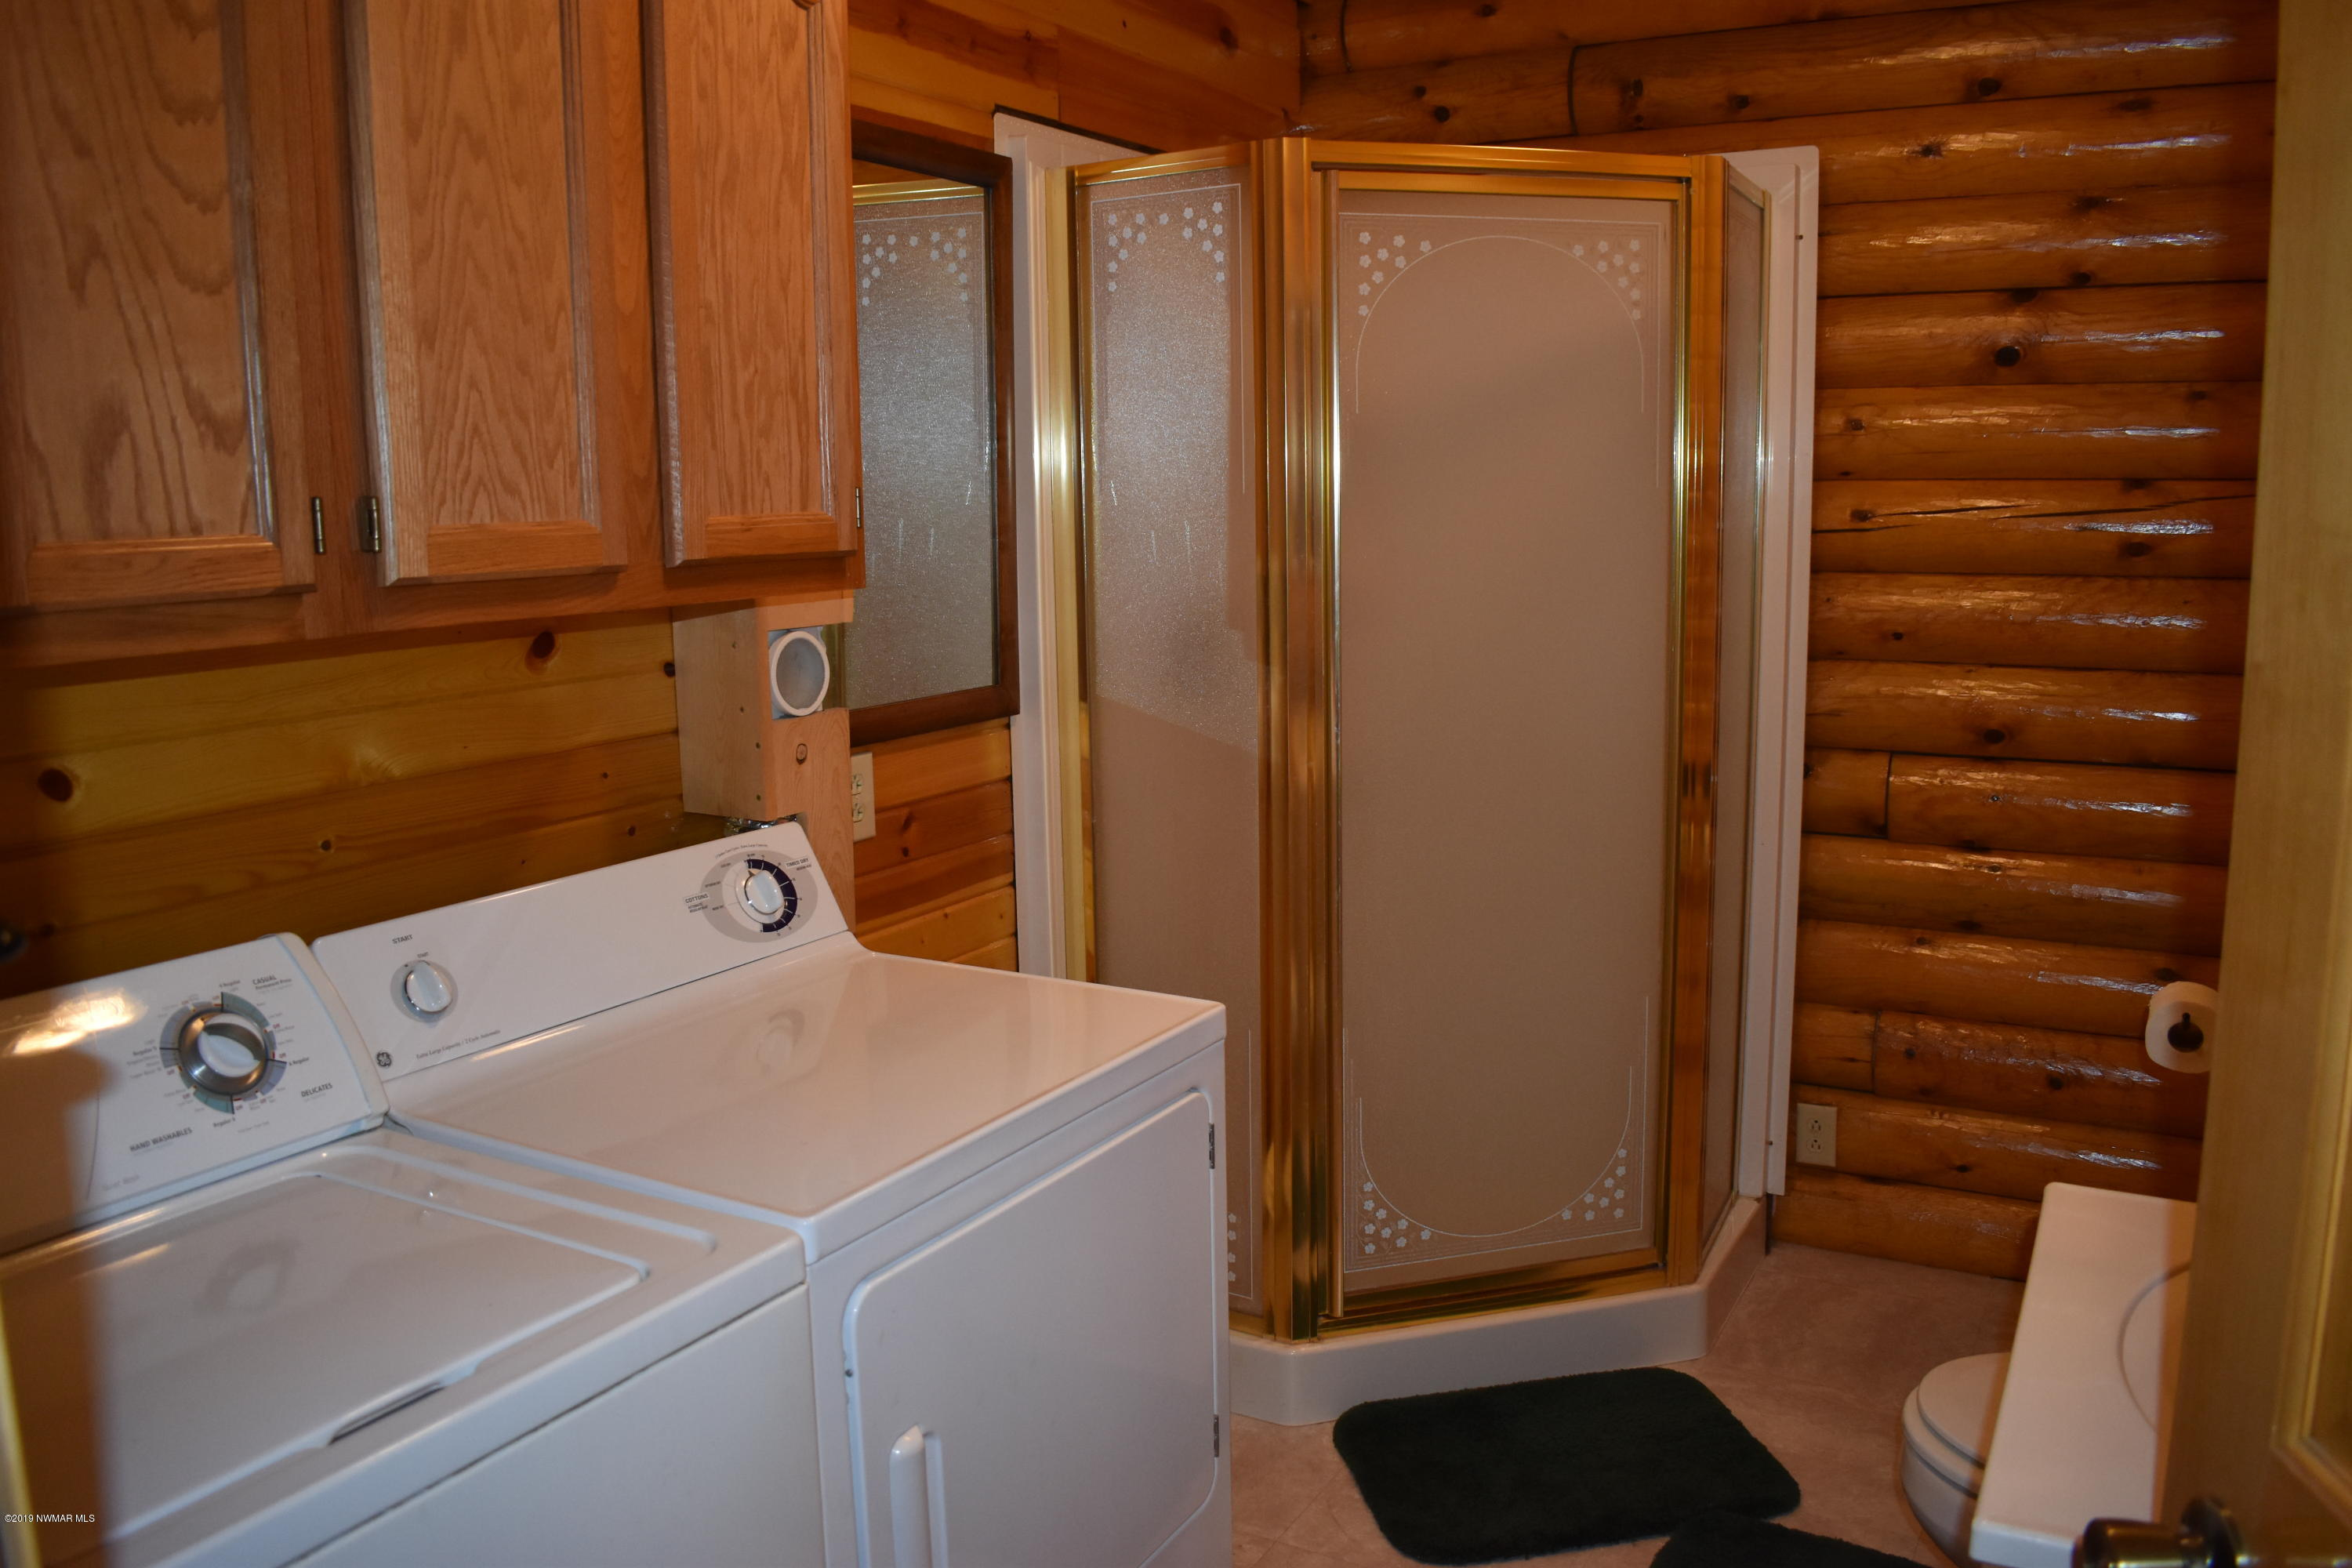 large bathroom and laundry on main floor